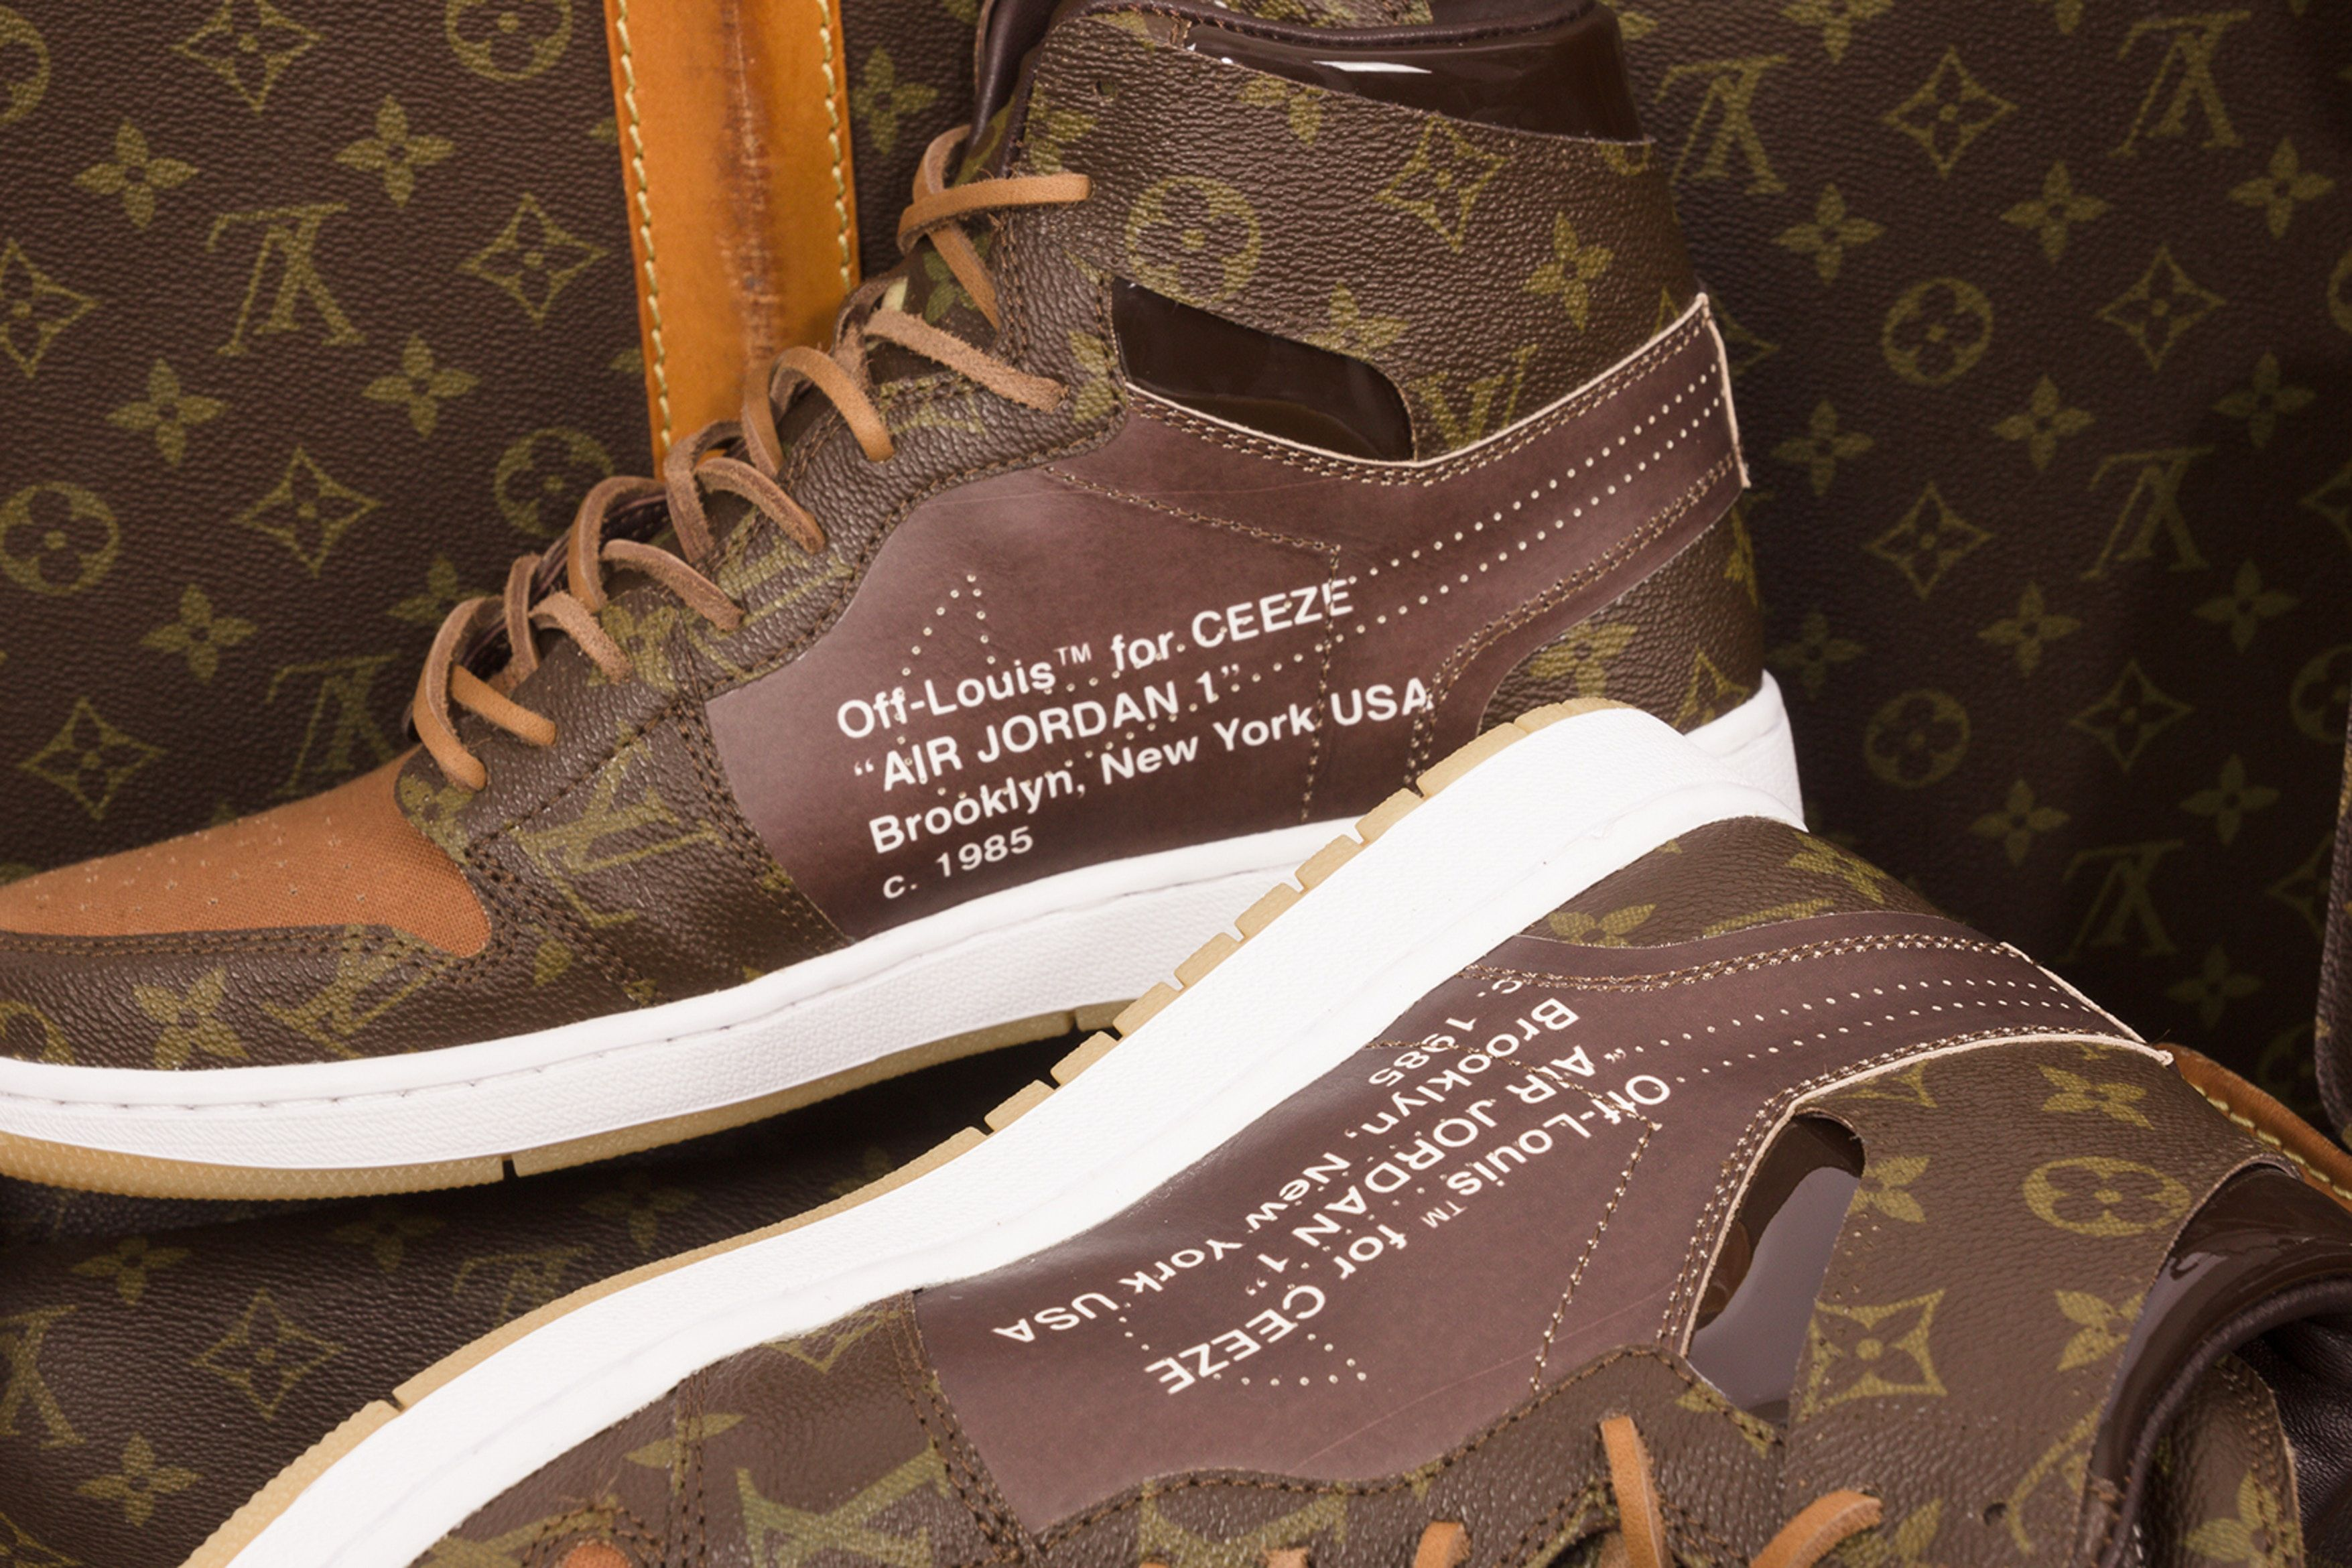 6729ce52cd7a Nike x Off-White x Louis Vuitton Air Jordan 1 Customs Monogram  4000 USD  Virgil Abloh CeezeMC Relevant Customs release details 1 of 10 sneakers  footwear how ...